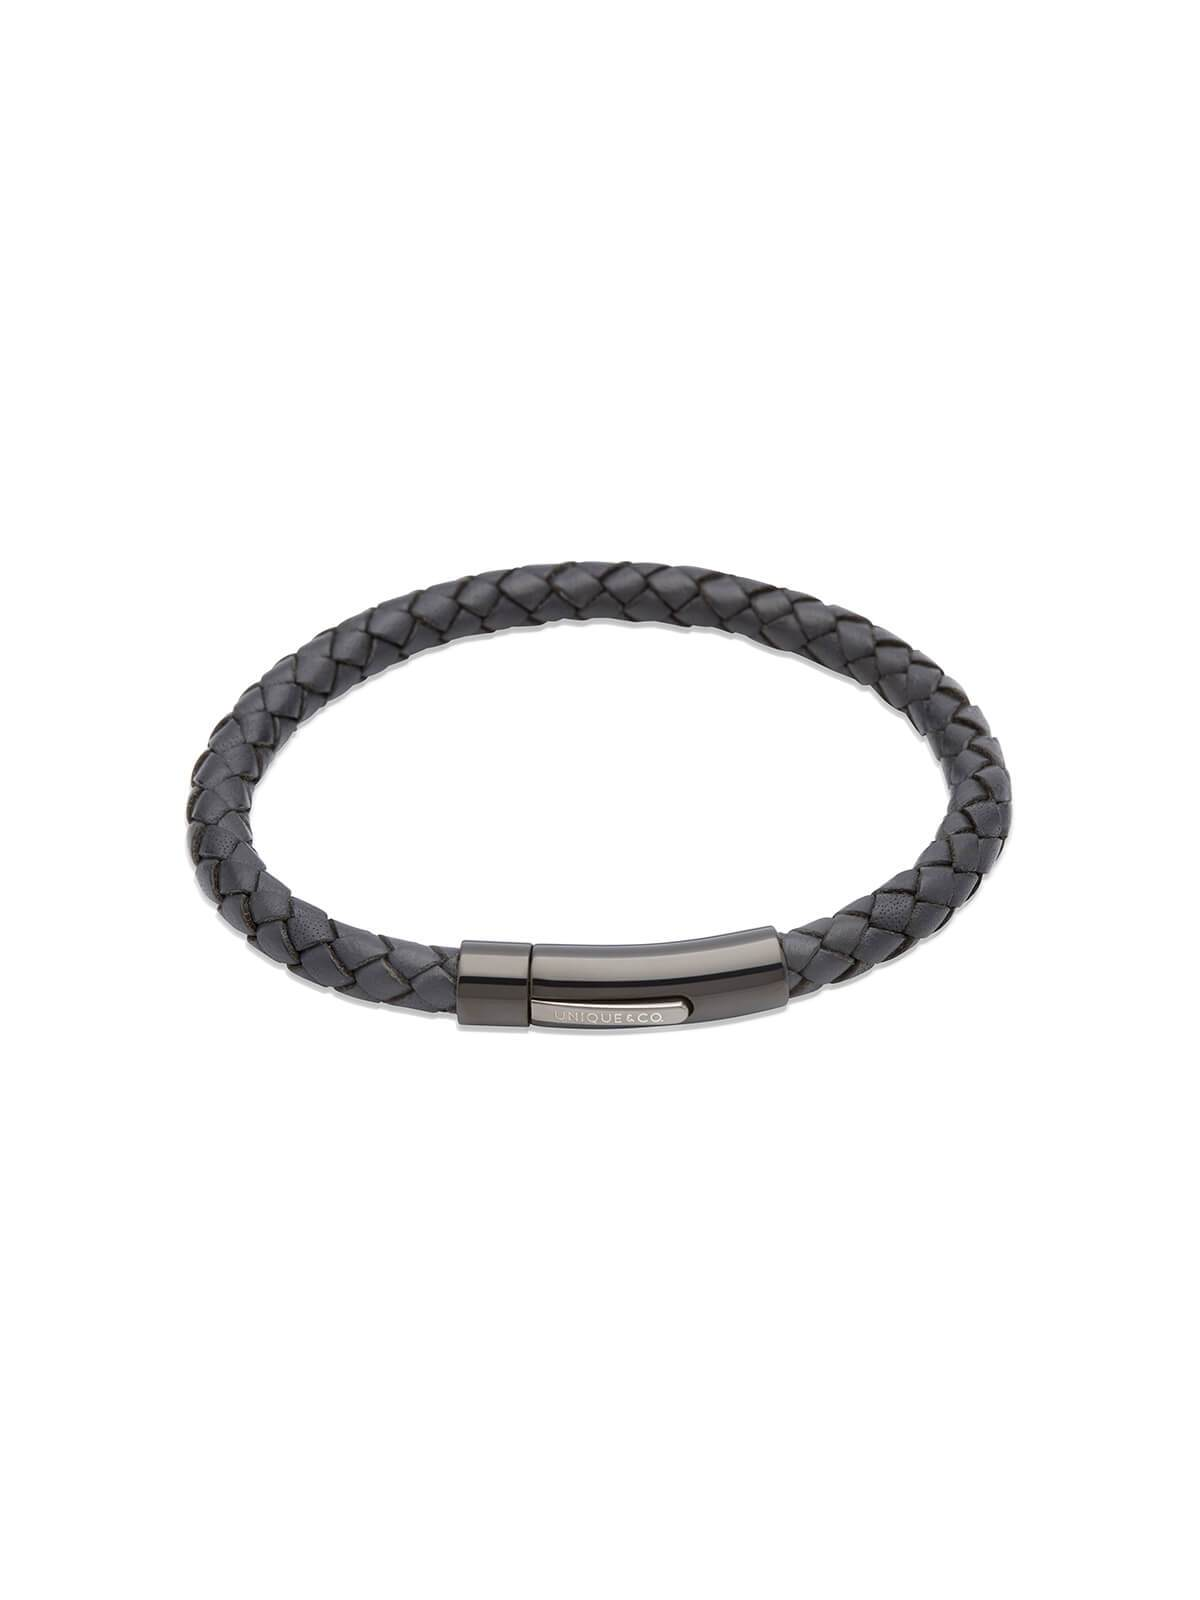 Unique & Co. 21cm Navy Blue Leather Bracelet B320NV/21CM